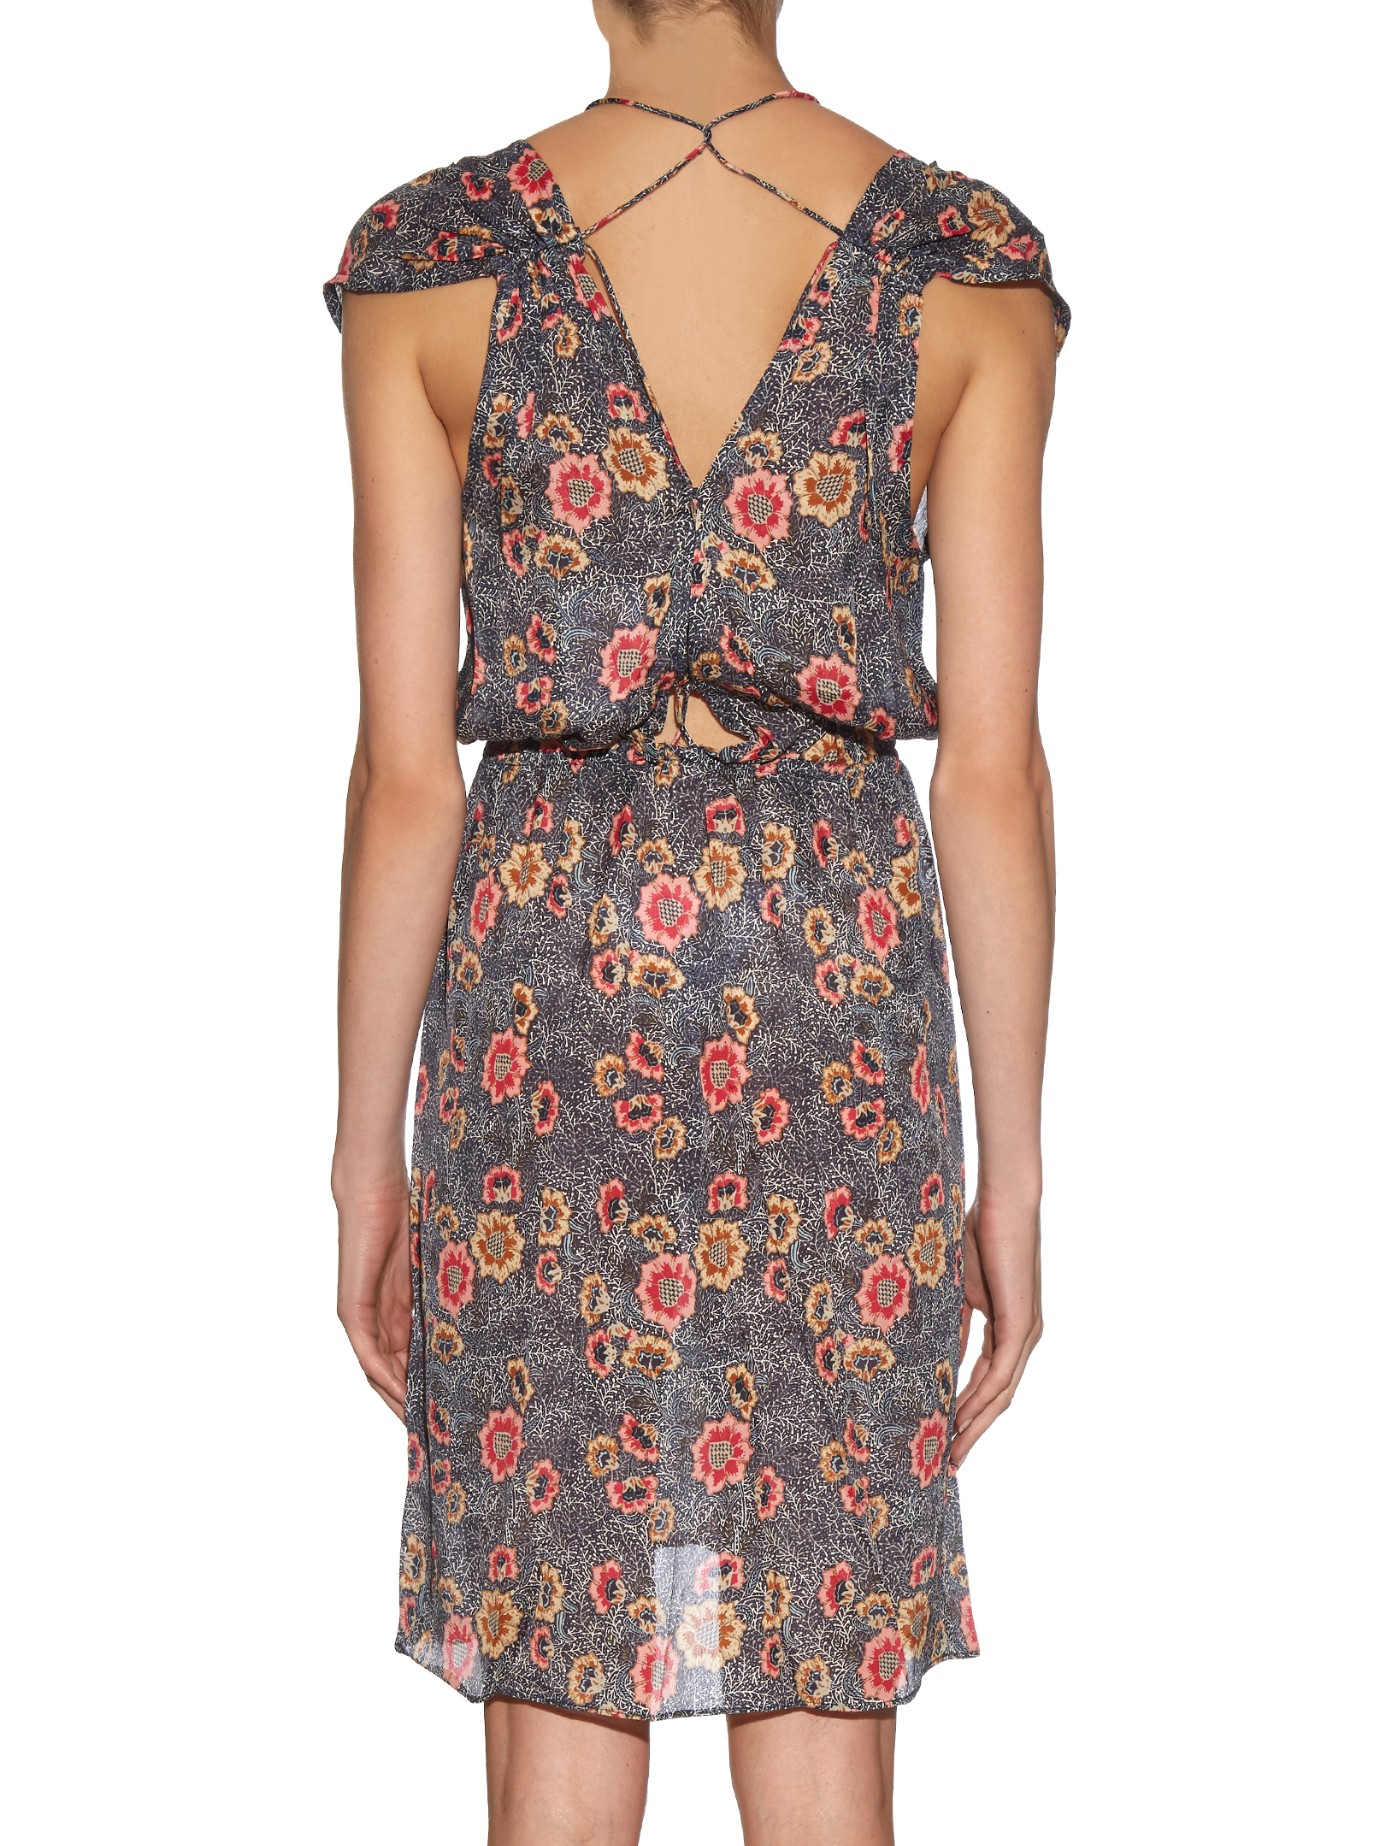 201 Toile Isabel Marant Synthetic Drecious Floral Print